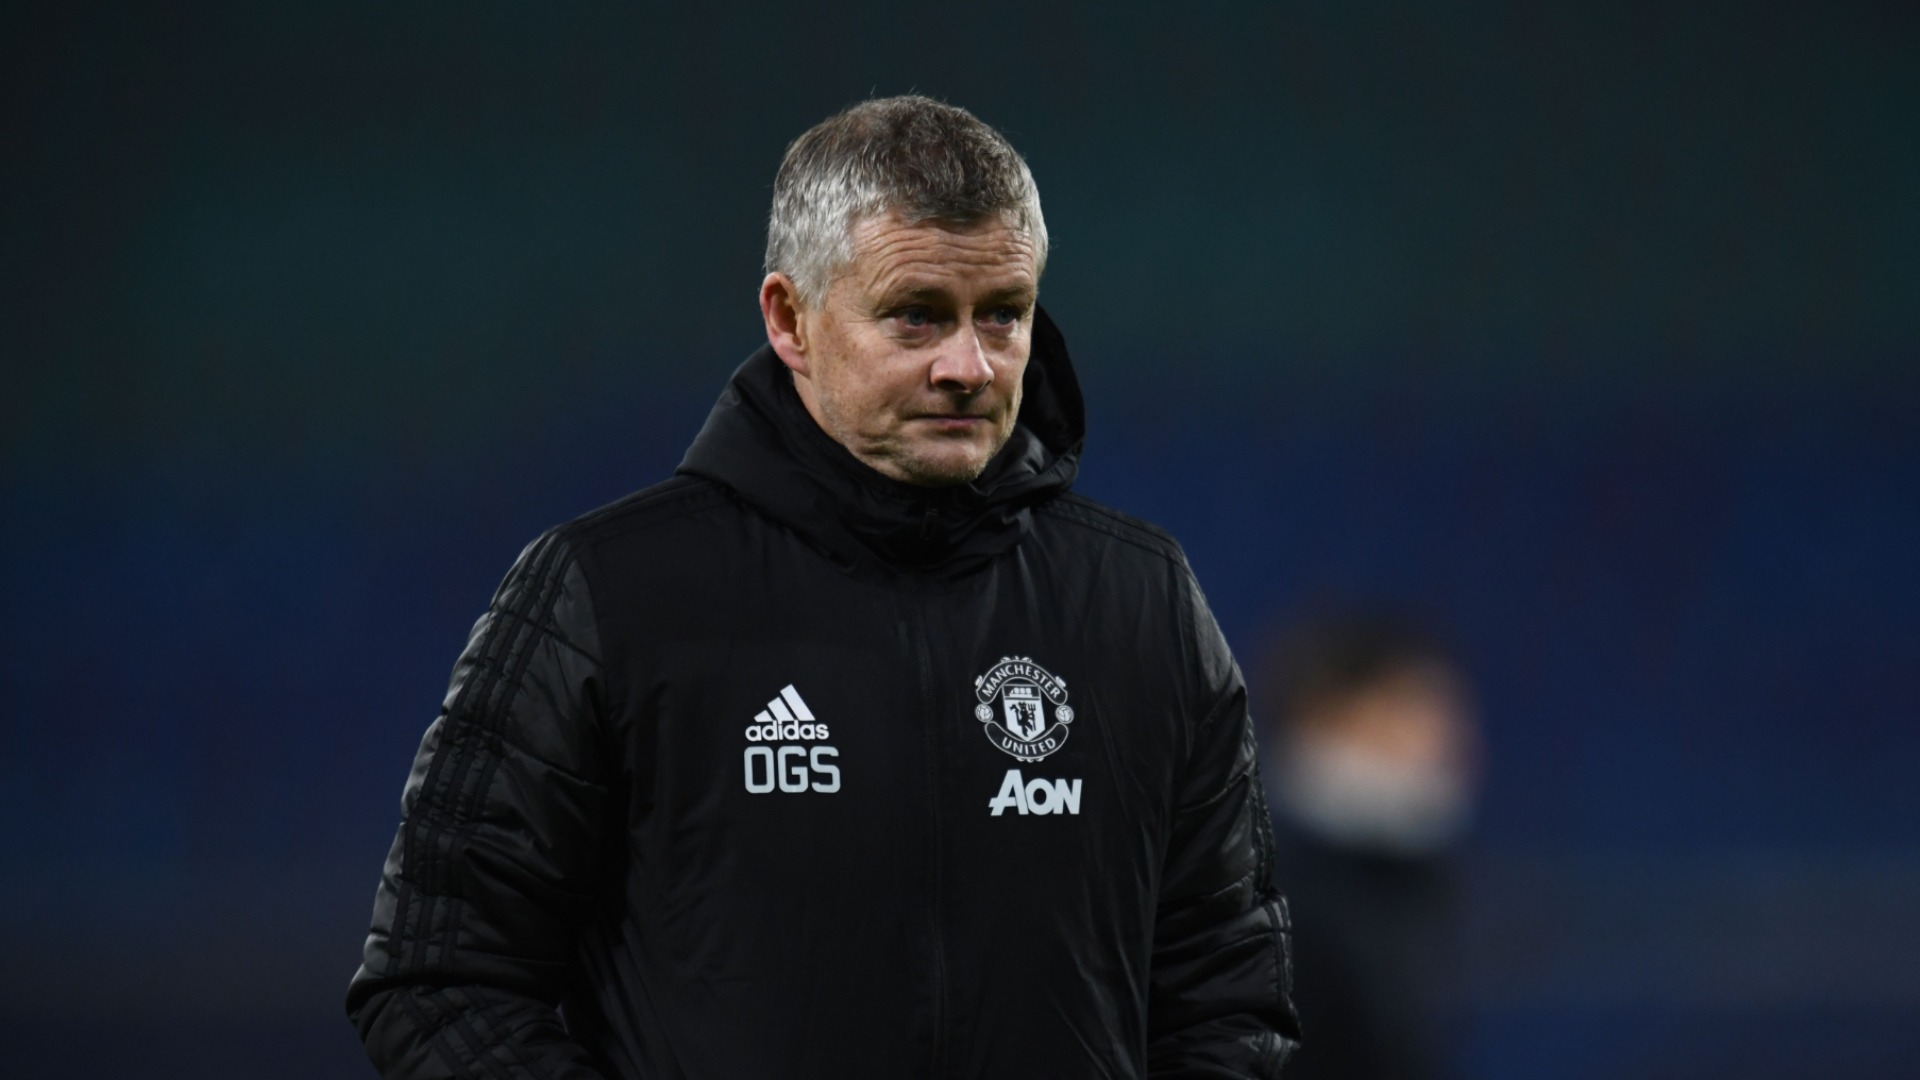 Man Utd boss Solskjaer itching to renew rivalries with Leeds: They'll push us to the limits